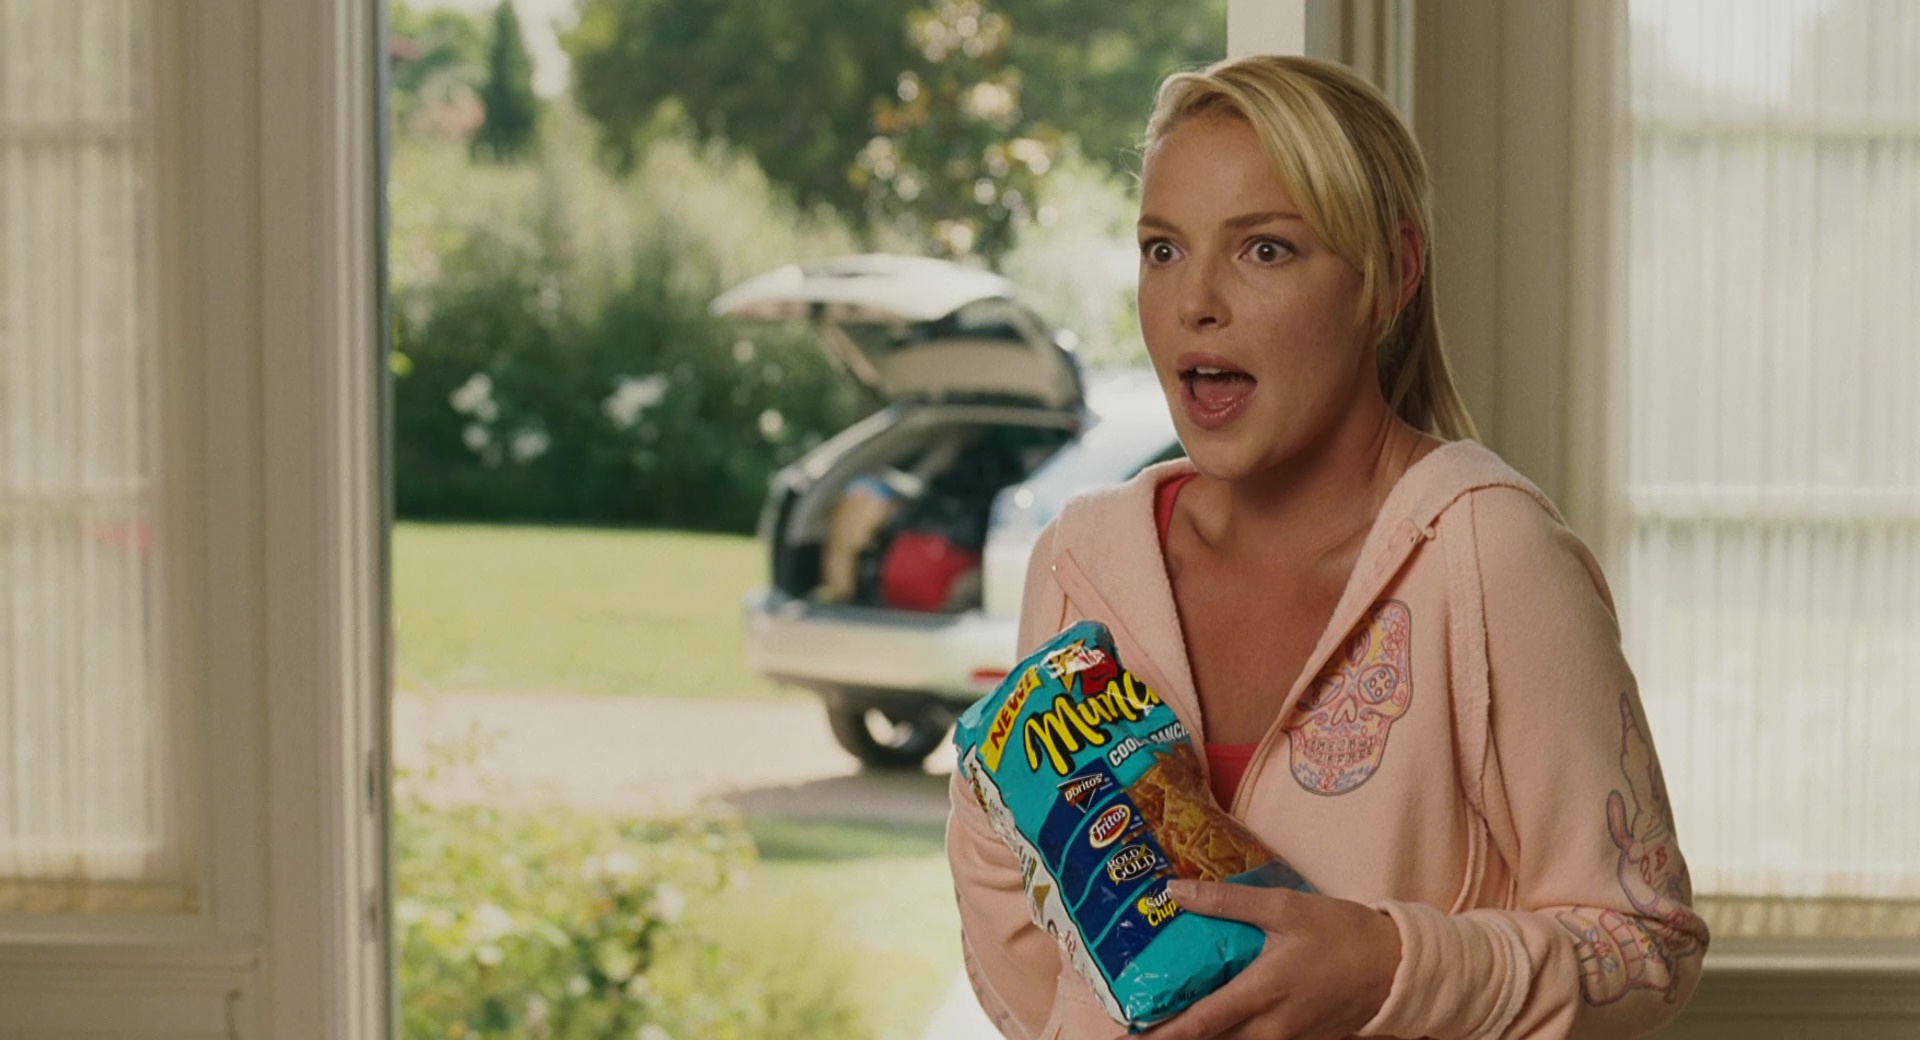 Munchies Snack Mix And Katherine Heigl In Knocked Up (2007 ...